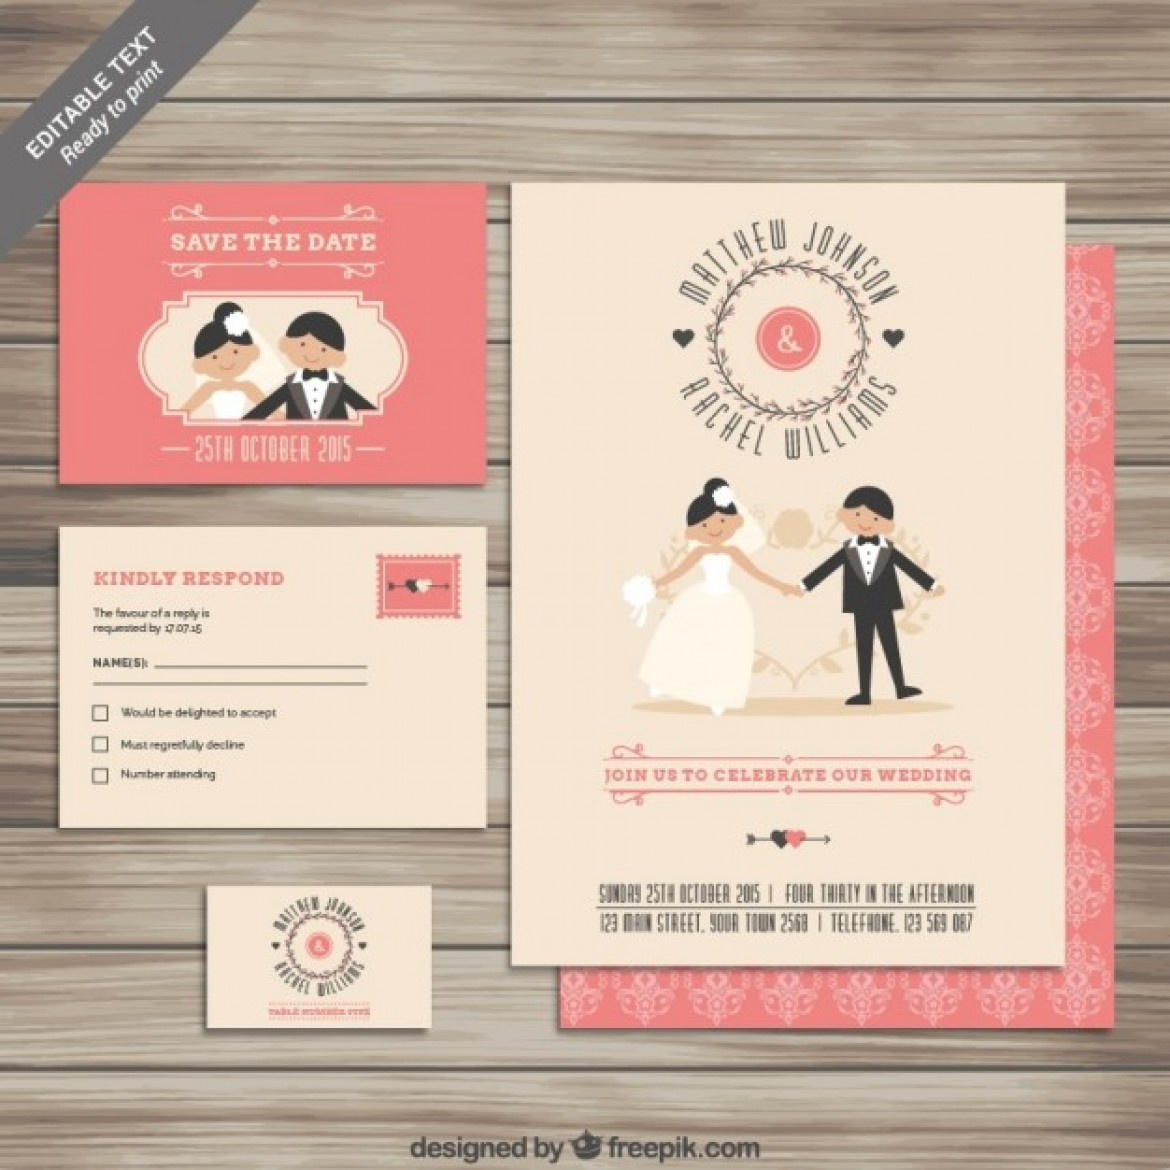 Free wedding invitations templates with instant download